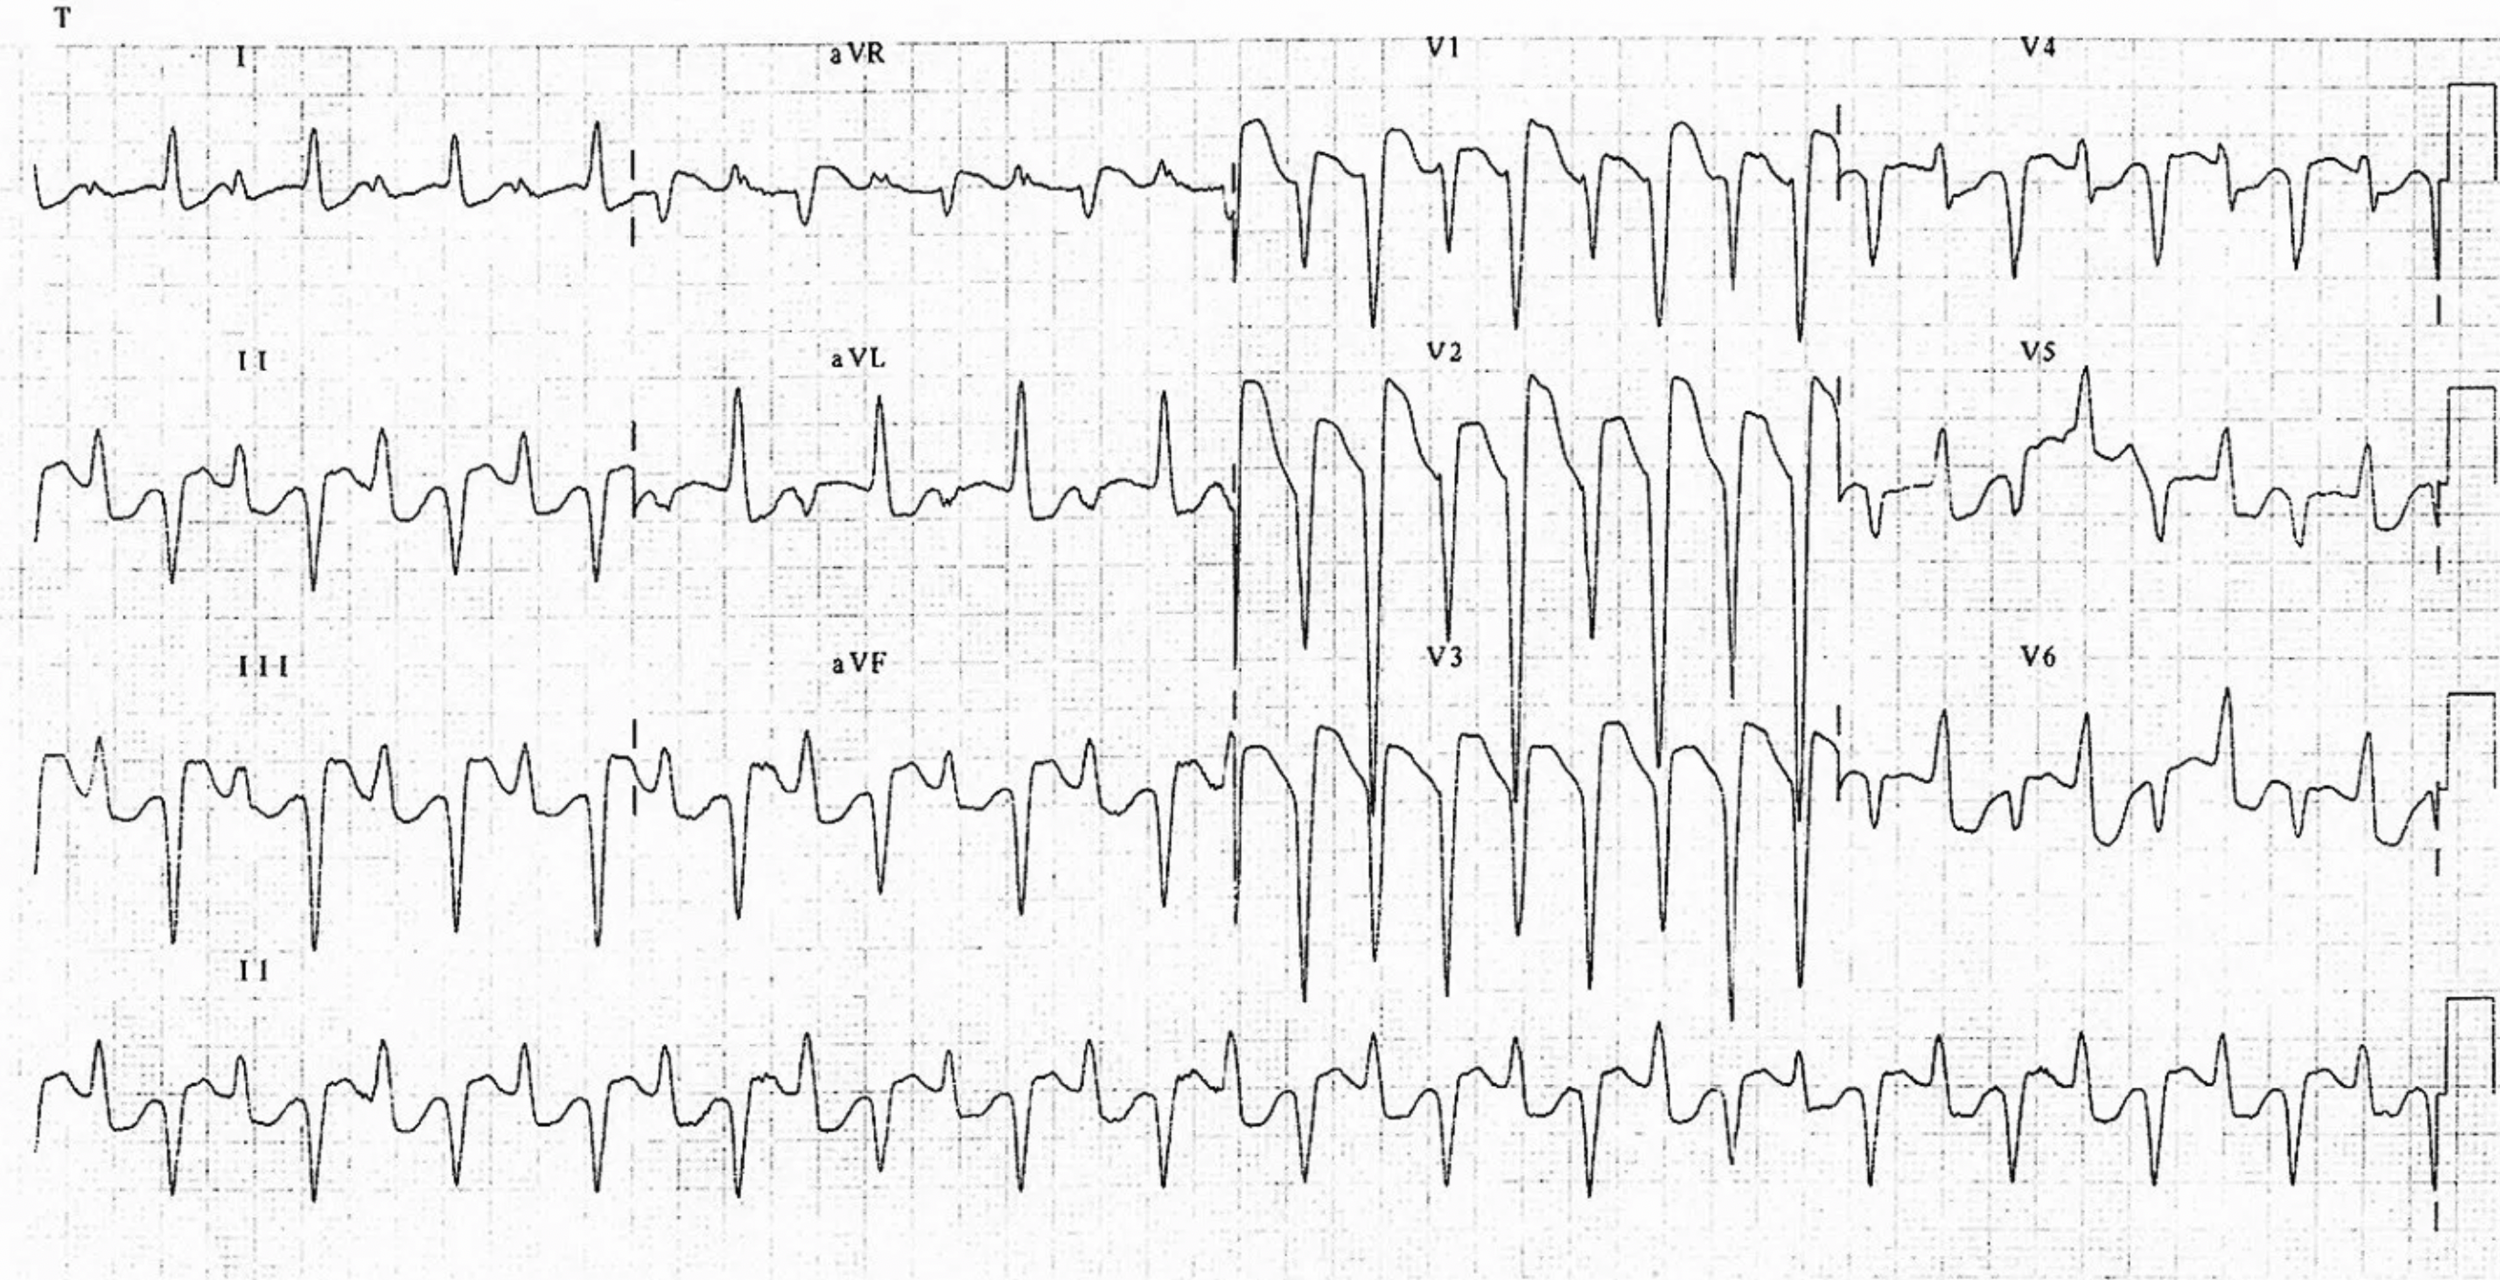 1. This is a classic dysrhythmia secondary to  which  toxicity?  2. What is a classic, more subtle finding you can see when the patient in normal sinus rhythm?